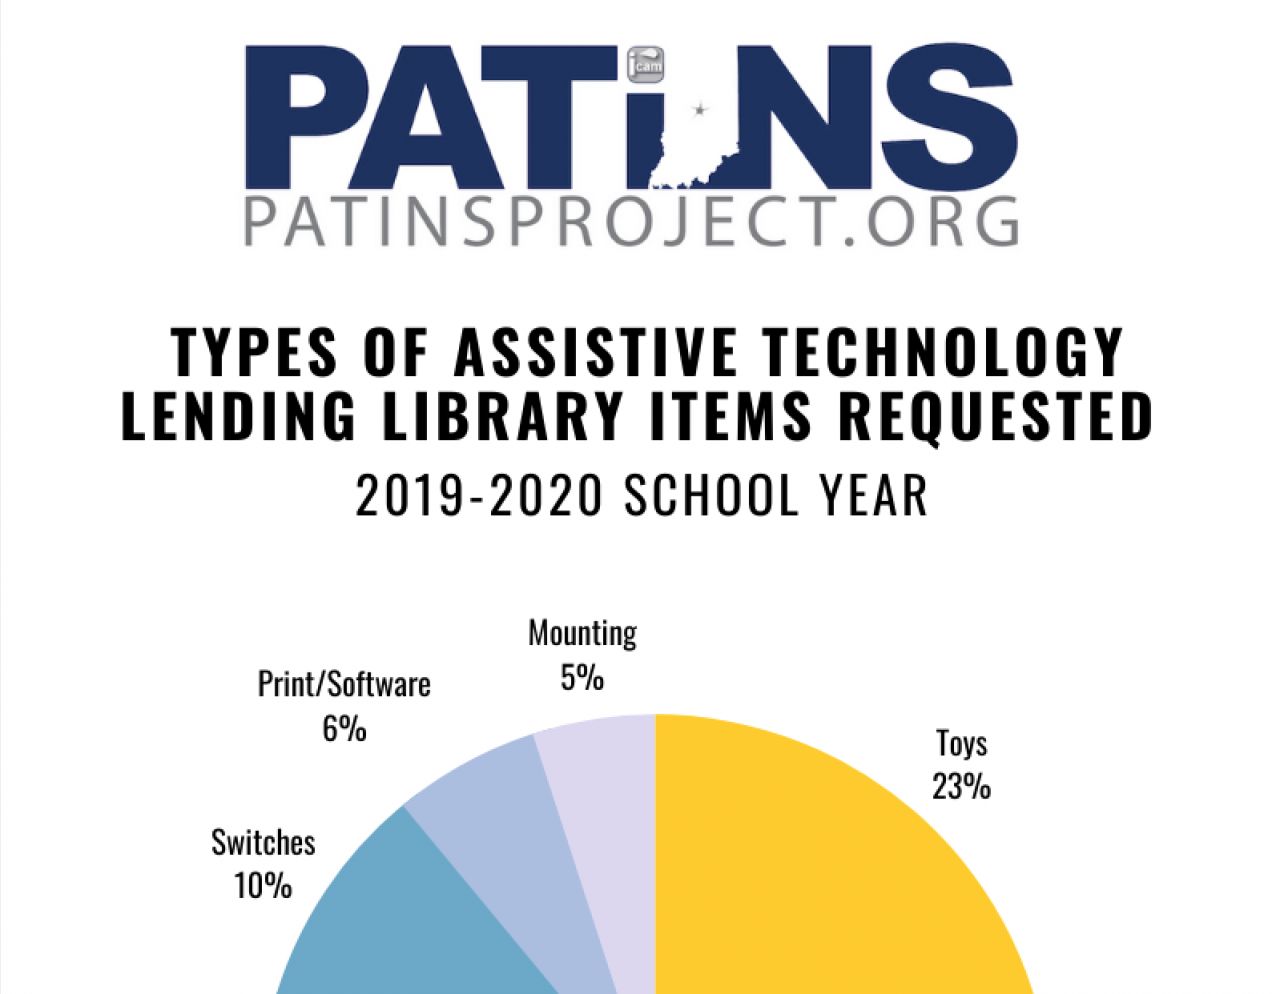 Types of Assistive Technology Lending Library Items Requested 2019-2020 School Year